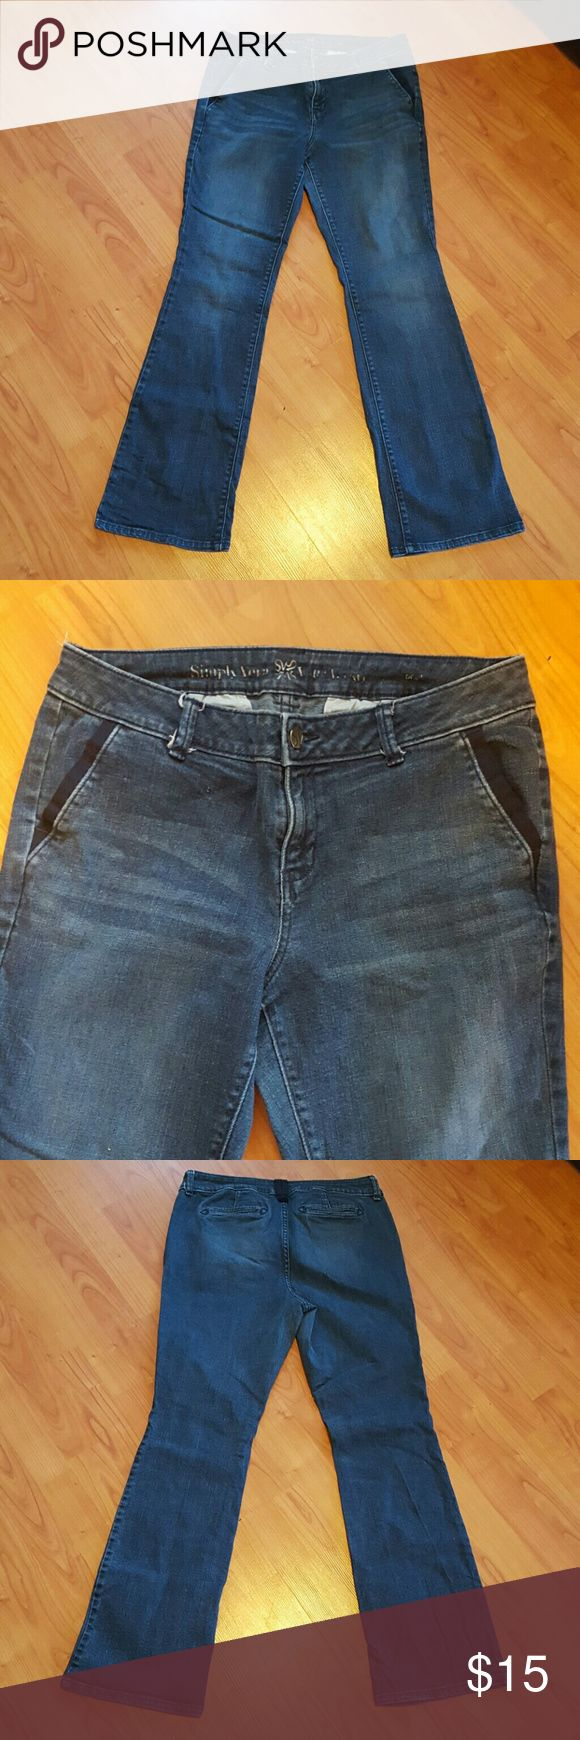 Simply Vera by Vera Wang sz 12 women's jeans Very nice pre-owned condition Simply Vera Vera Wang Jeans Boot Cut